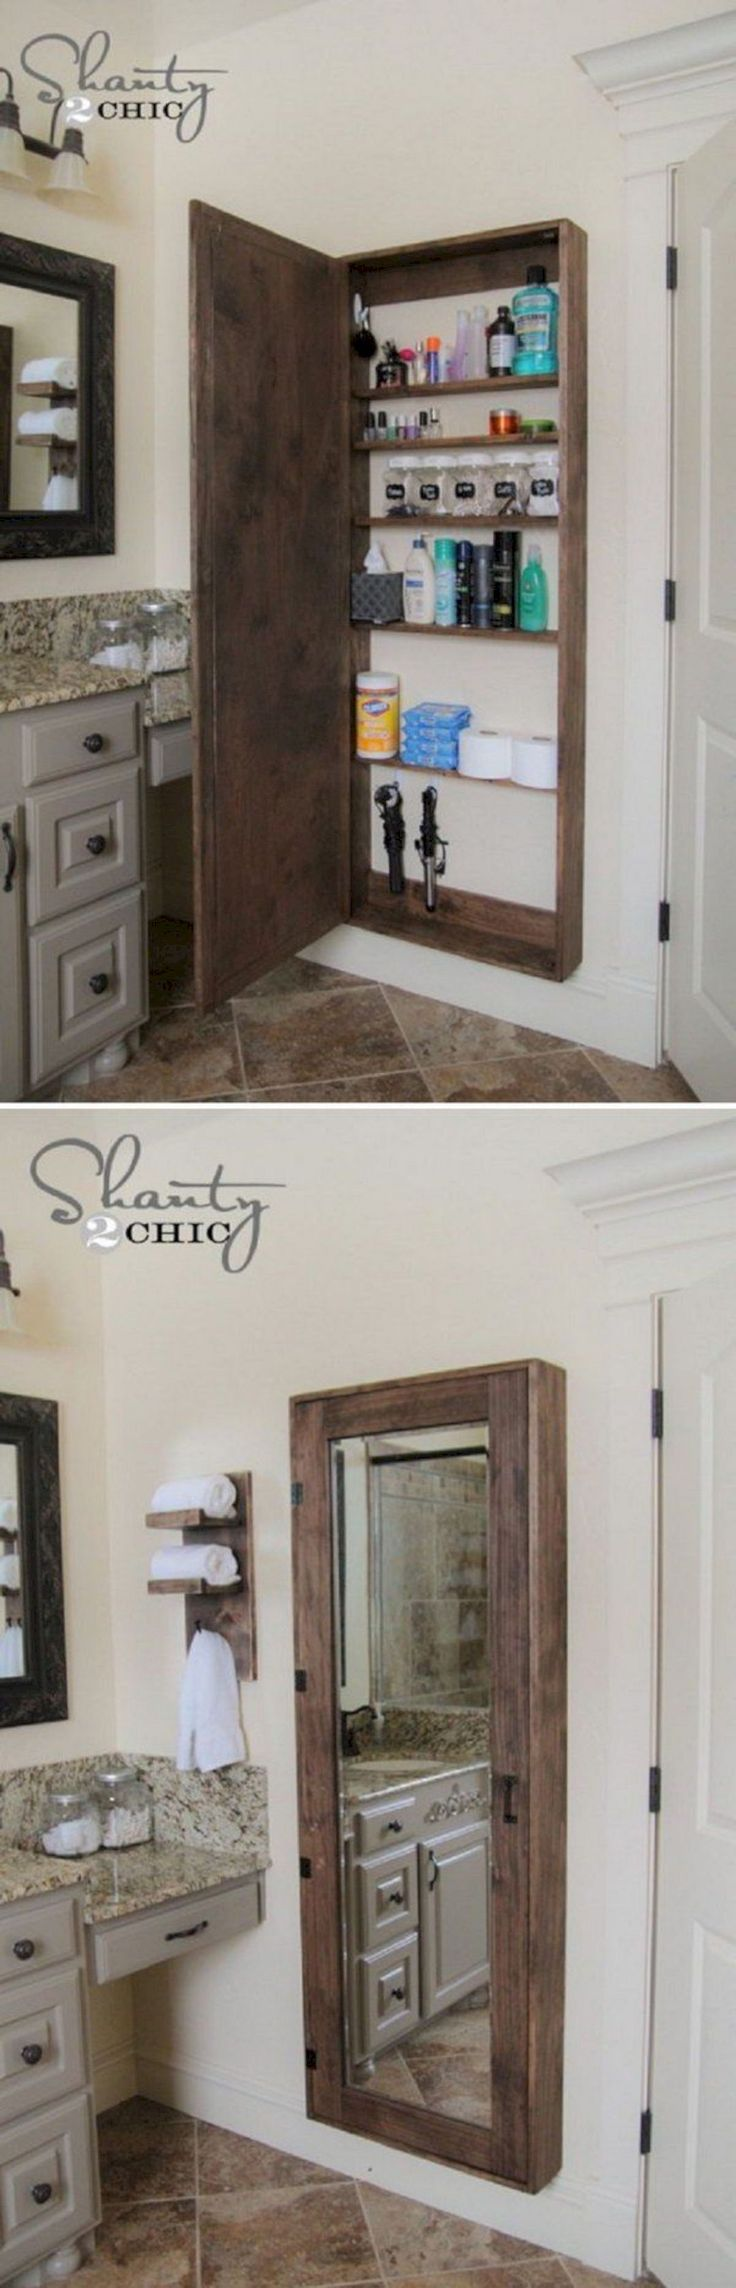 30 Top Small Space Decoration Hacks https://www.designlisticle.com/small-space-decoration-hacks/